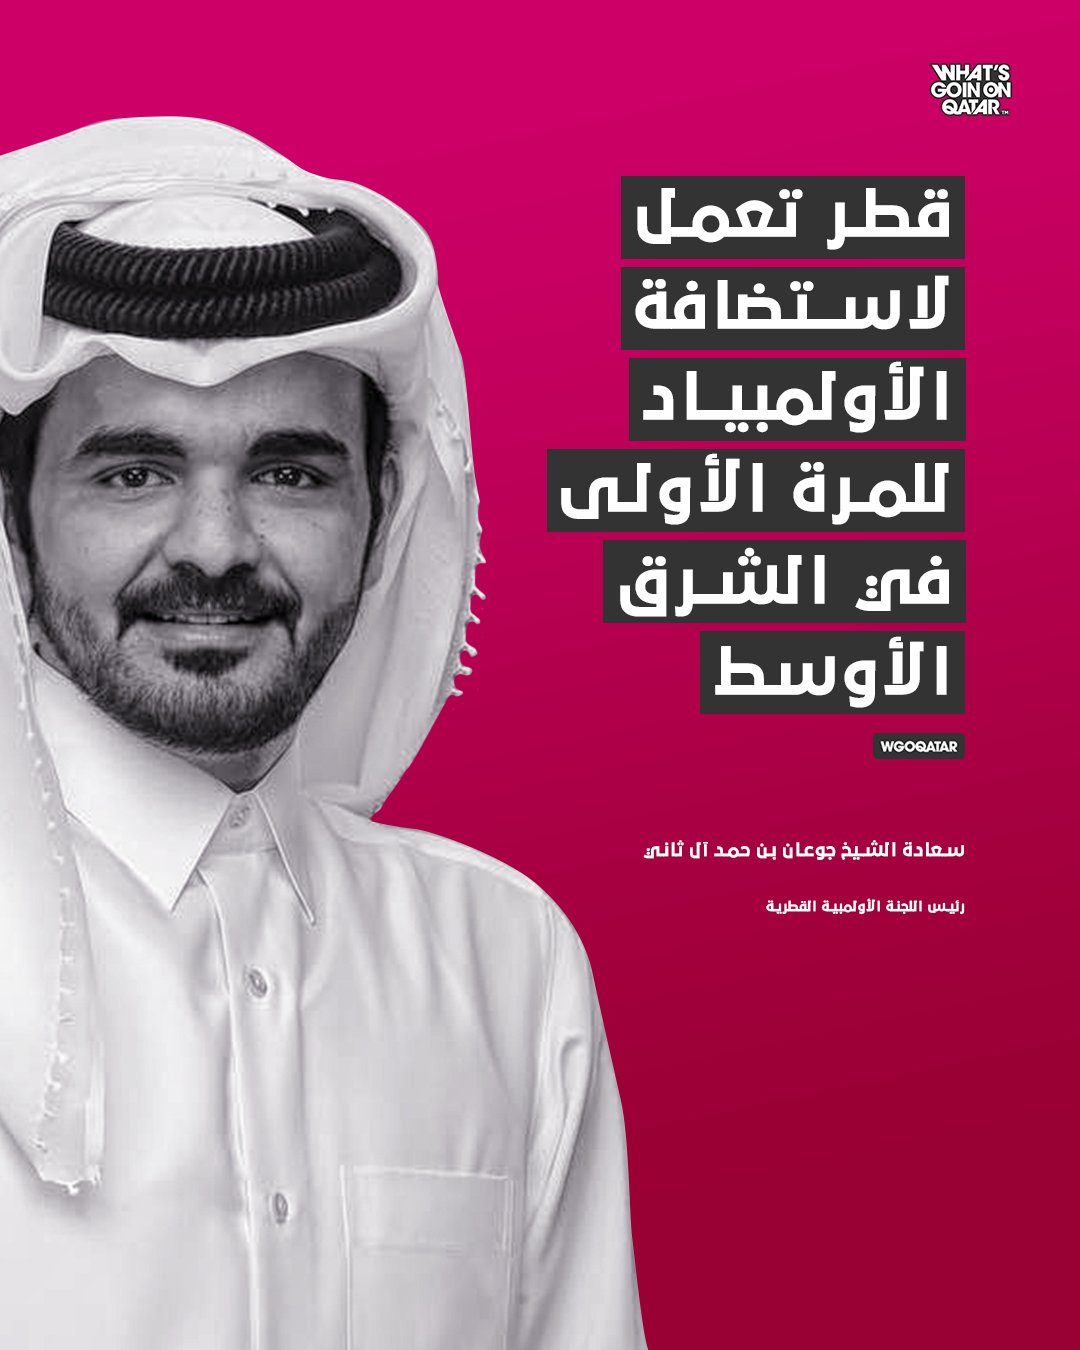 Sheikh Joaan: Qatar aims to host First Olympics in the Middle East